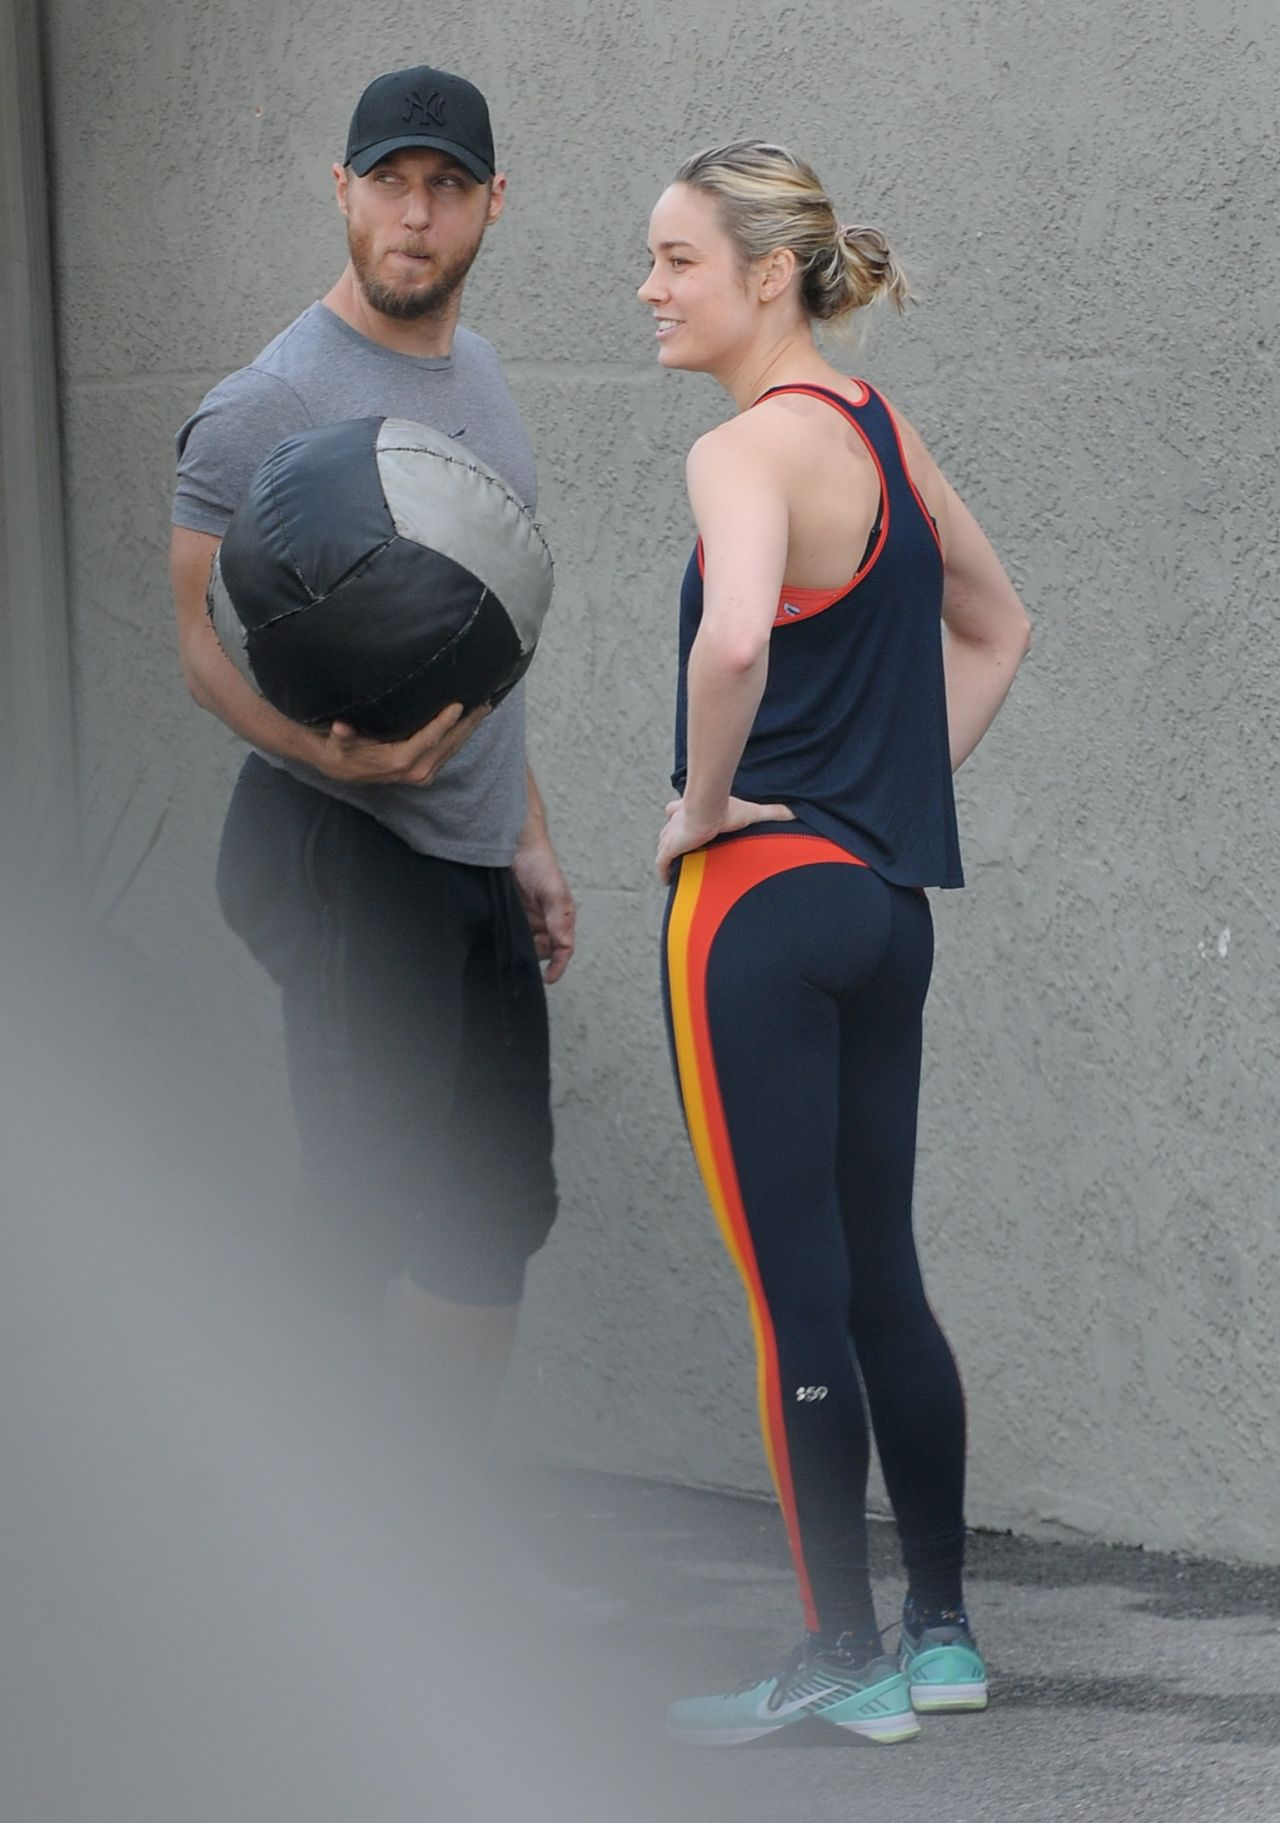 Brie Larson Works Up A Sweat At The Gym In La, January 2019-1853